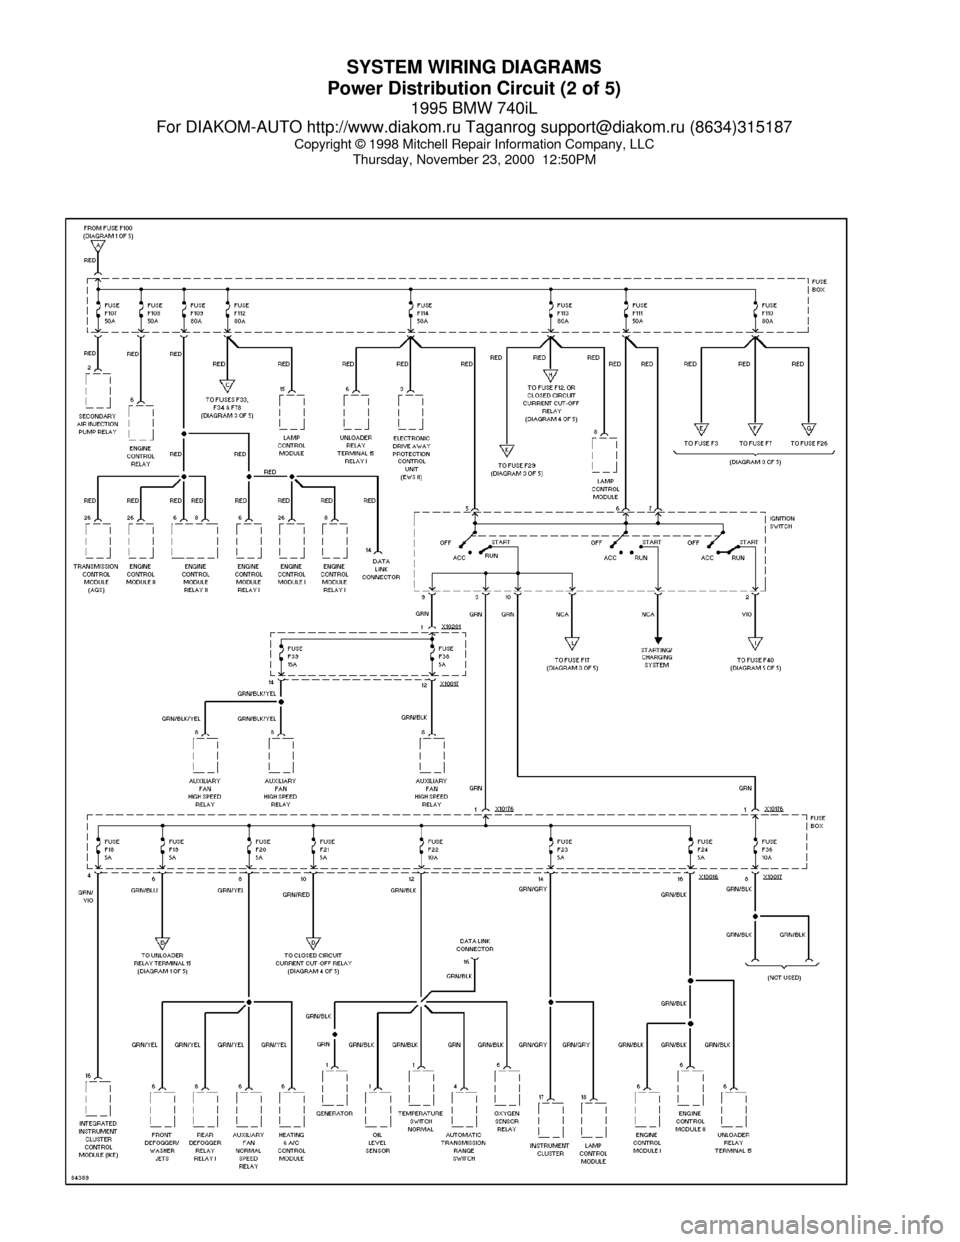 Bmw E38 Speaker Wiring Diagram For Free E36 Smg W960 2820 30 As Well 44 Together With Pinouts A Also